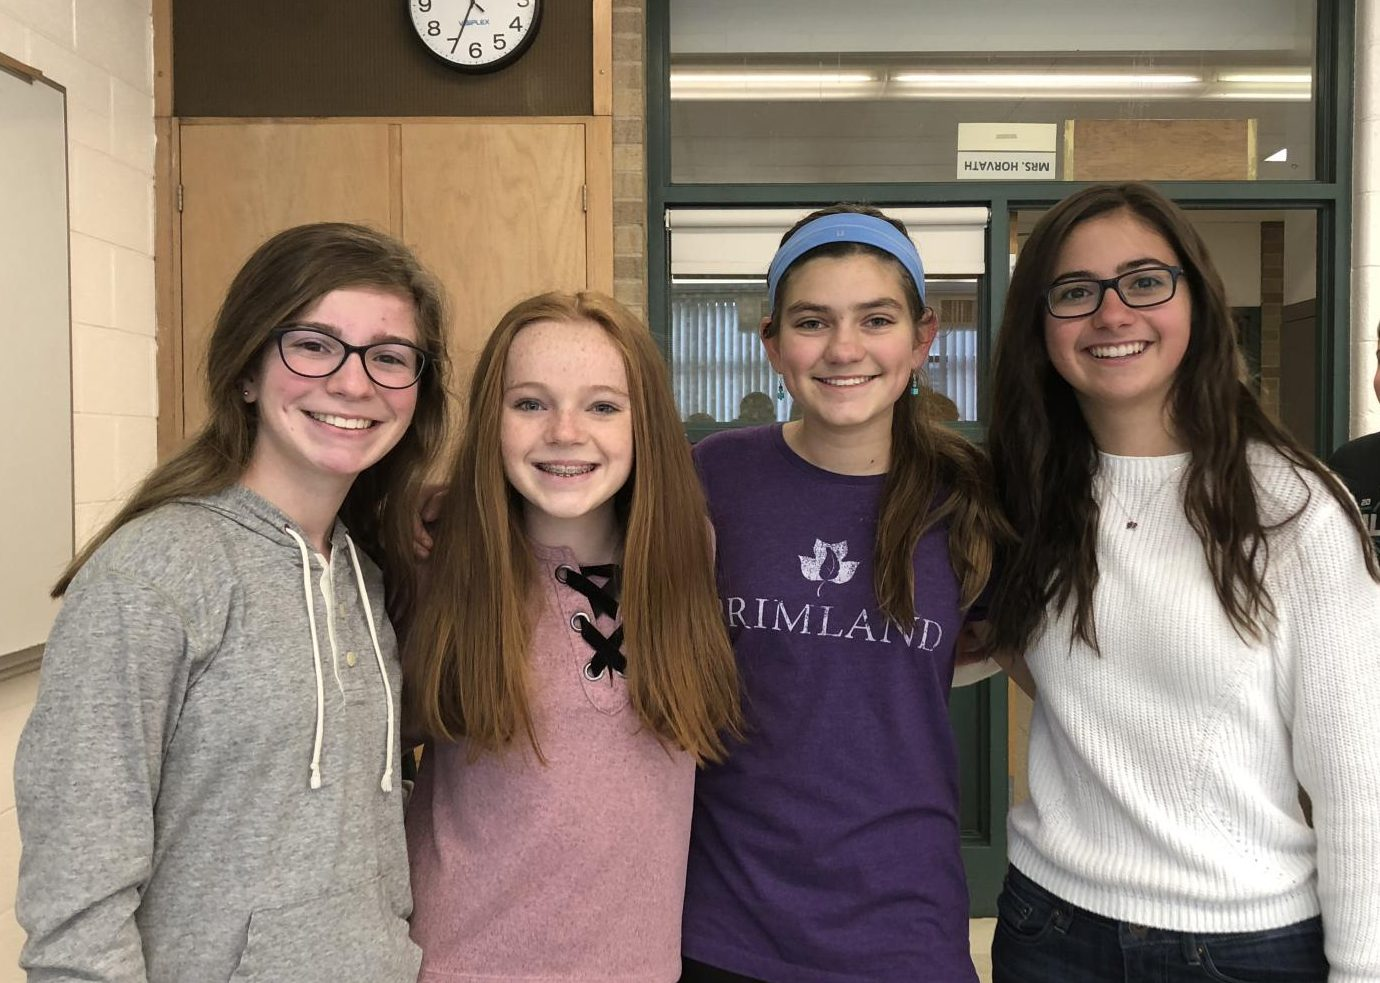 The student council representatives from left to right: Jenna Badger, Frances Walewski, Mary Kate L'Heureux, and Sophia Poulos.